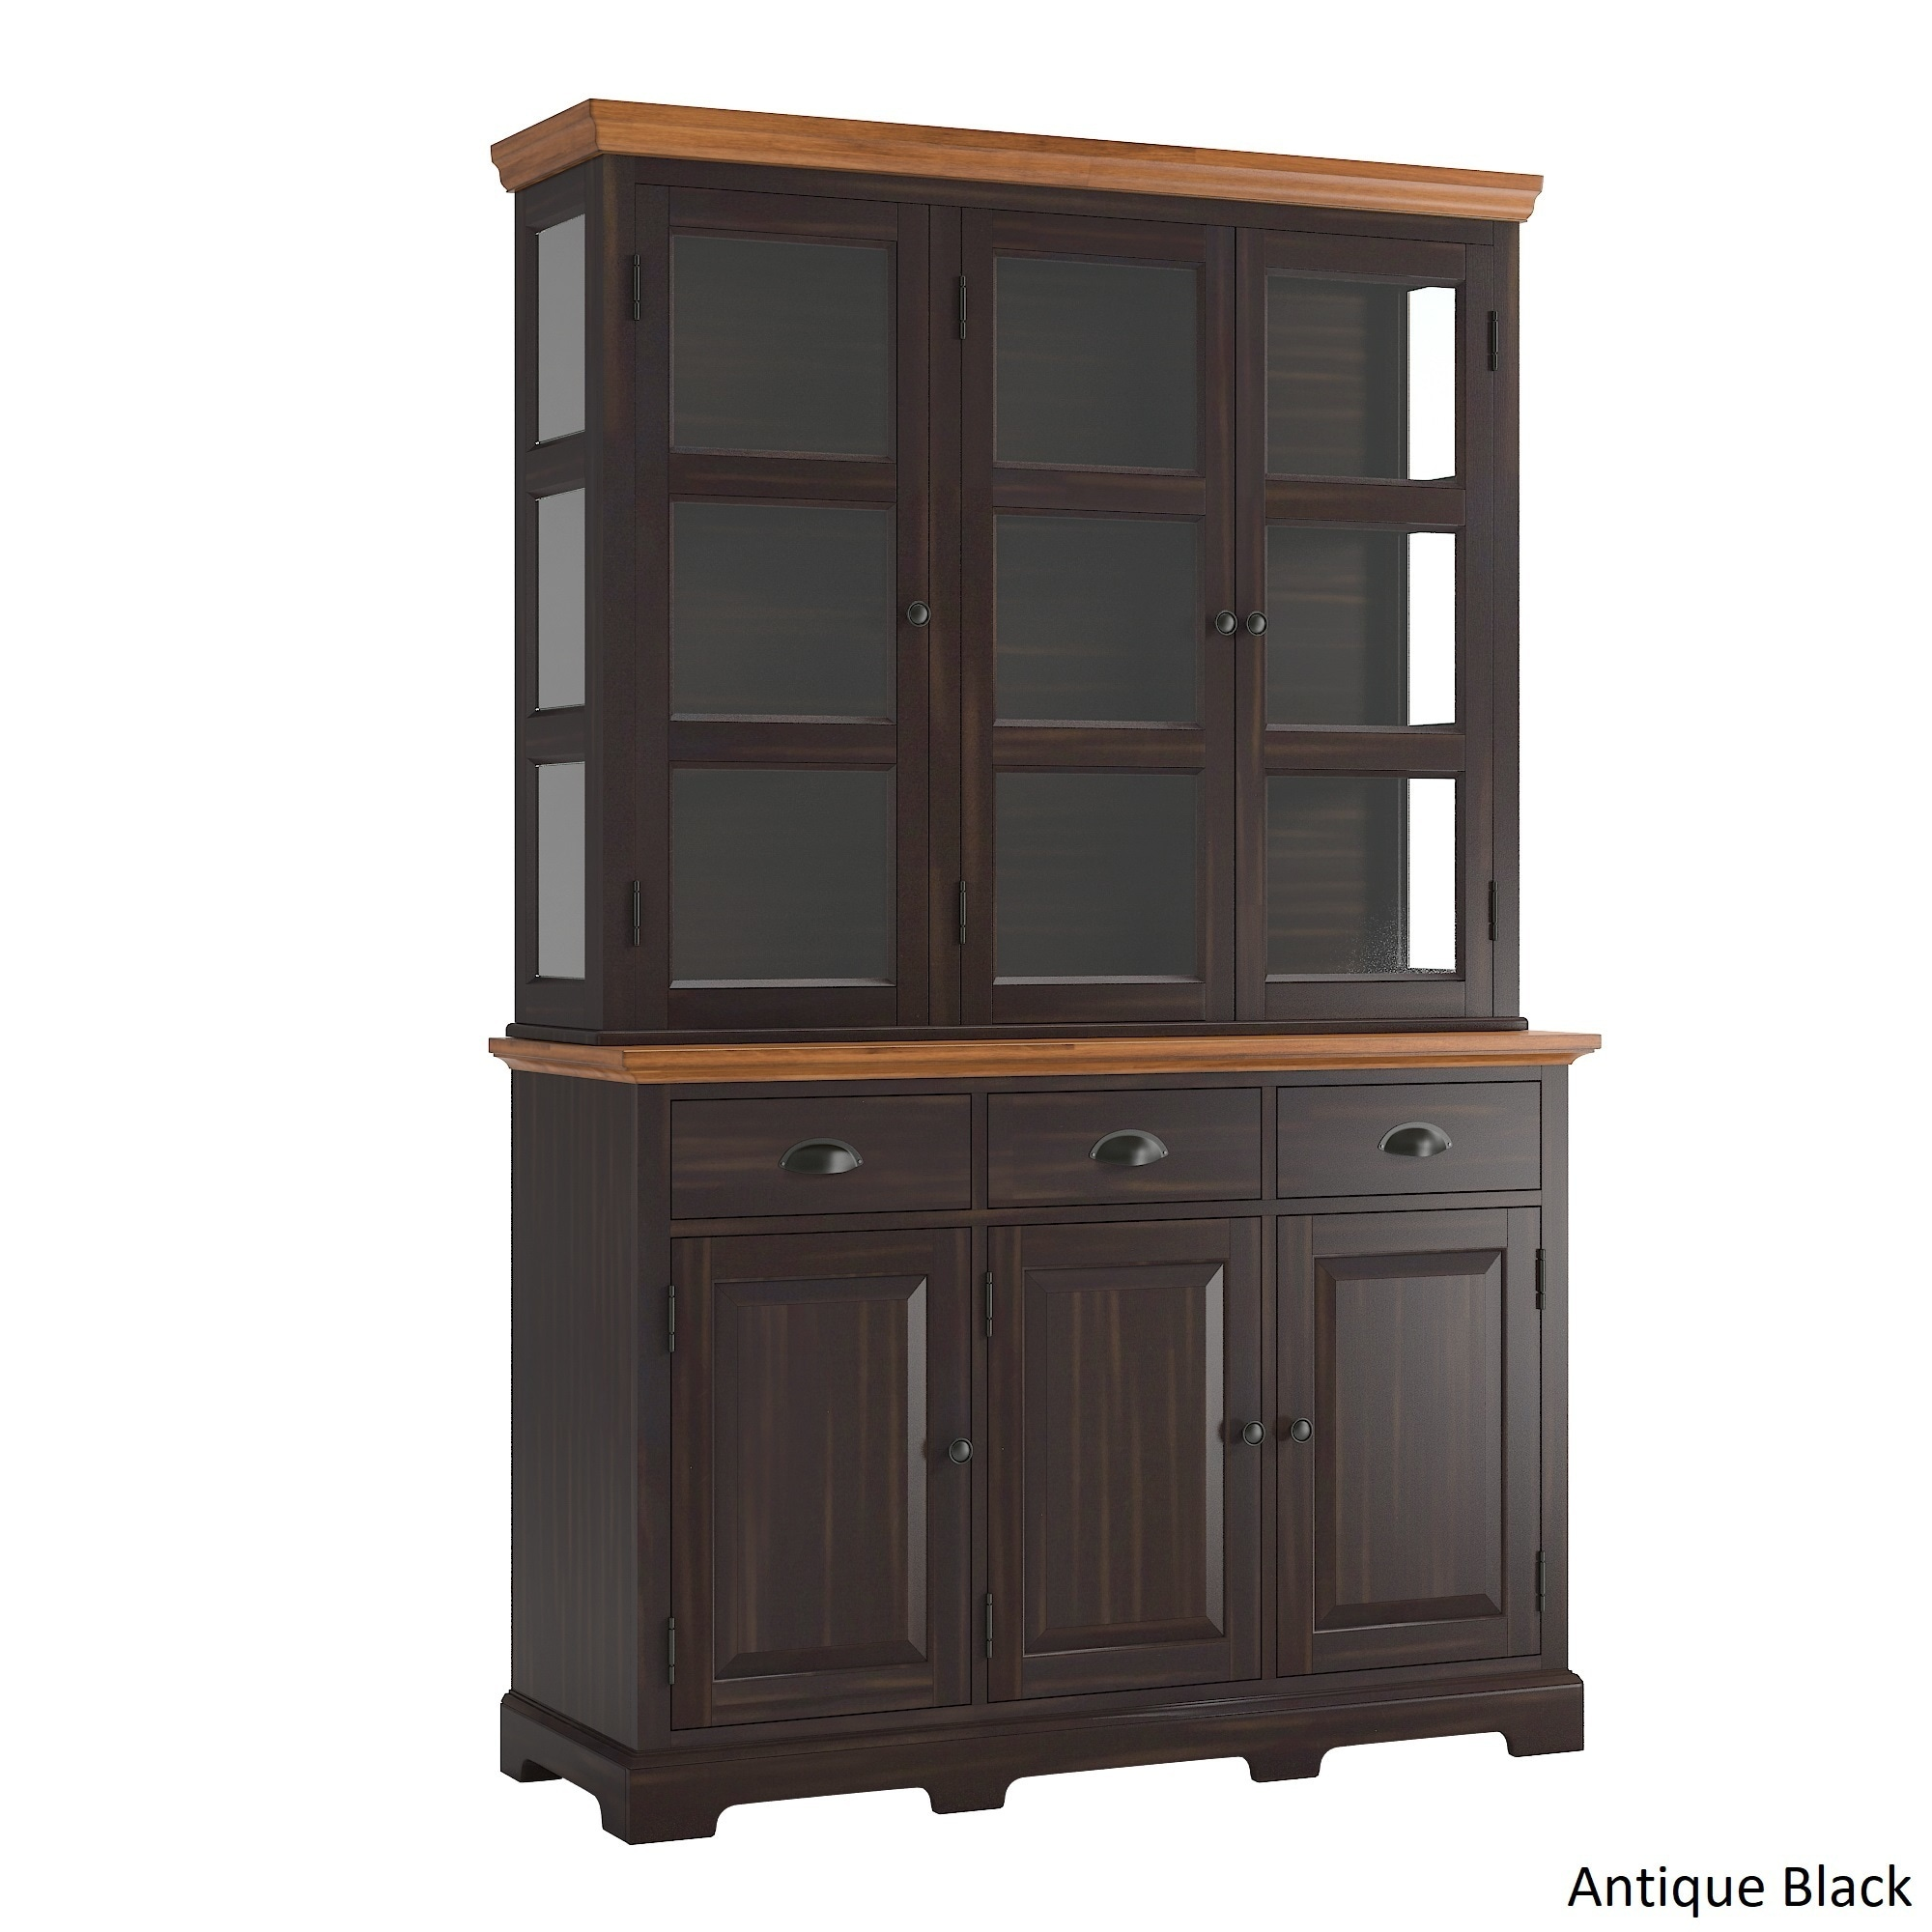 Eleanor Two Tone Wood Buffet Server And Hutch By Inspire Q Clic Free Shipping Today 20061782